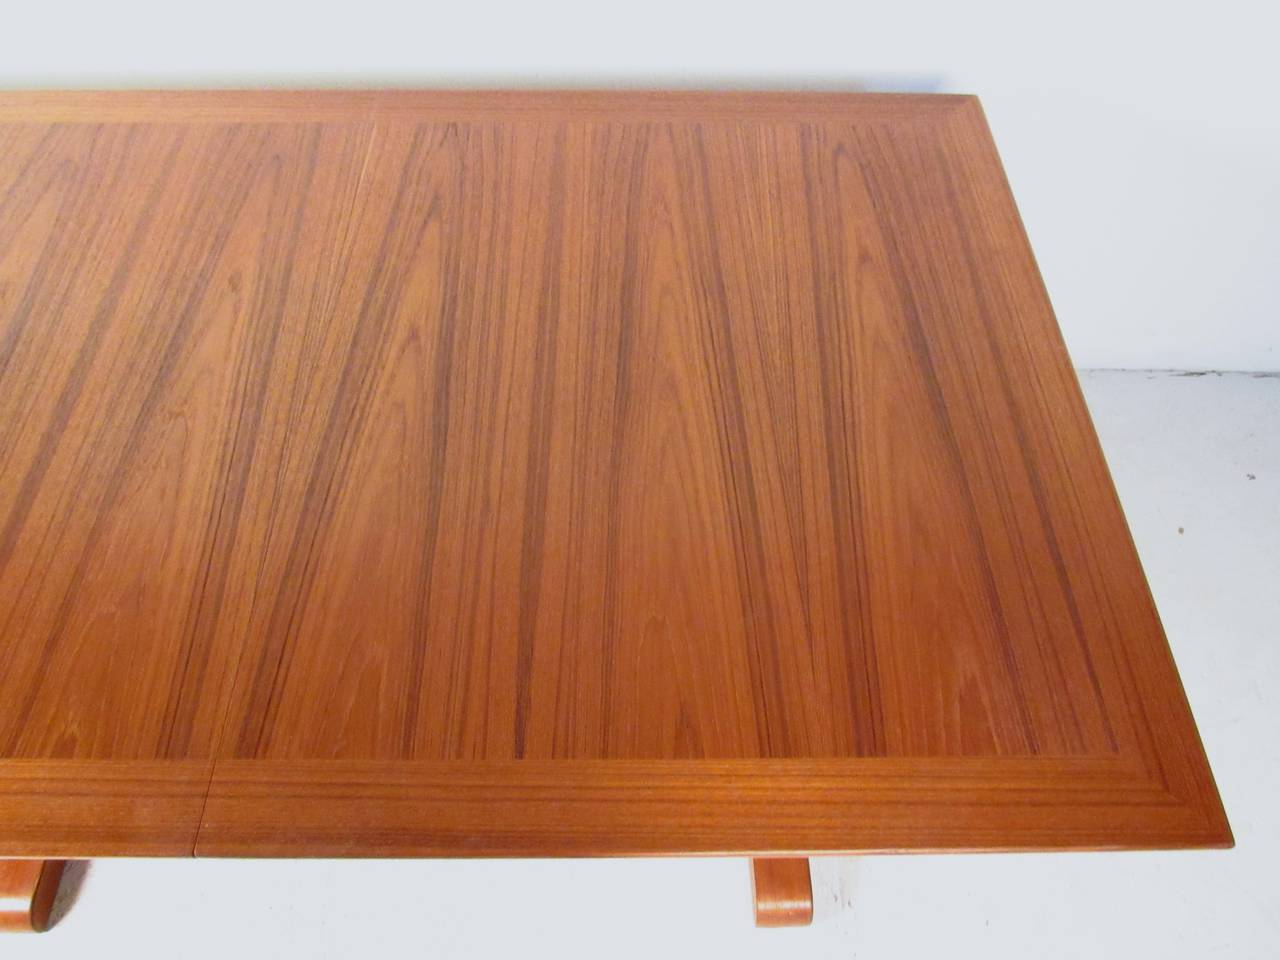 Mid-Century Modern Danish Teak Dining Table with Leaves For Sale 2